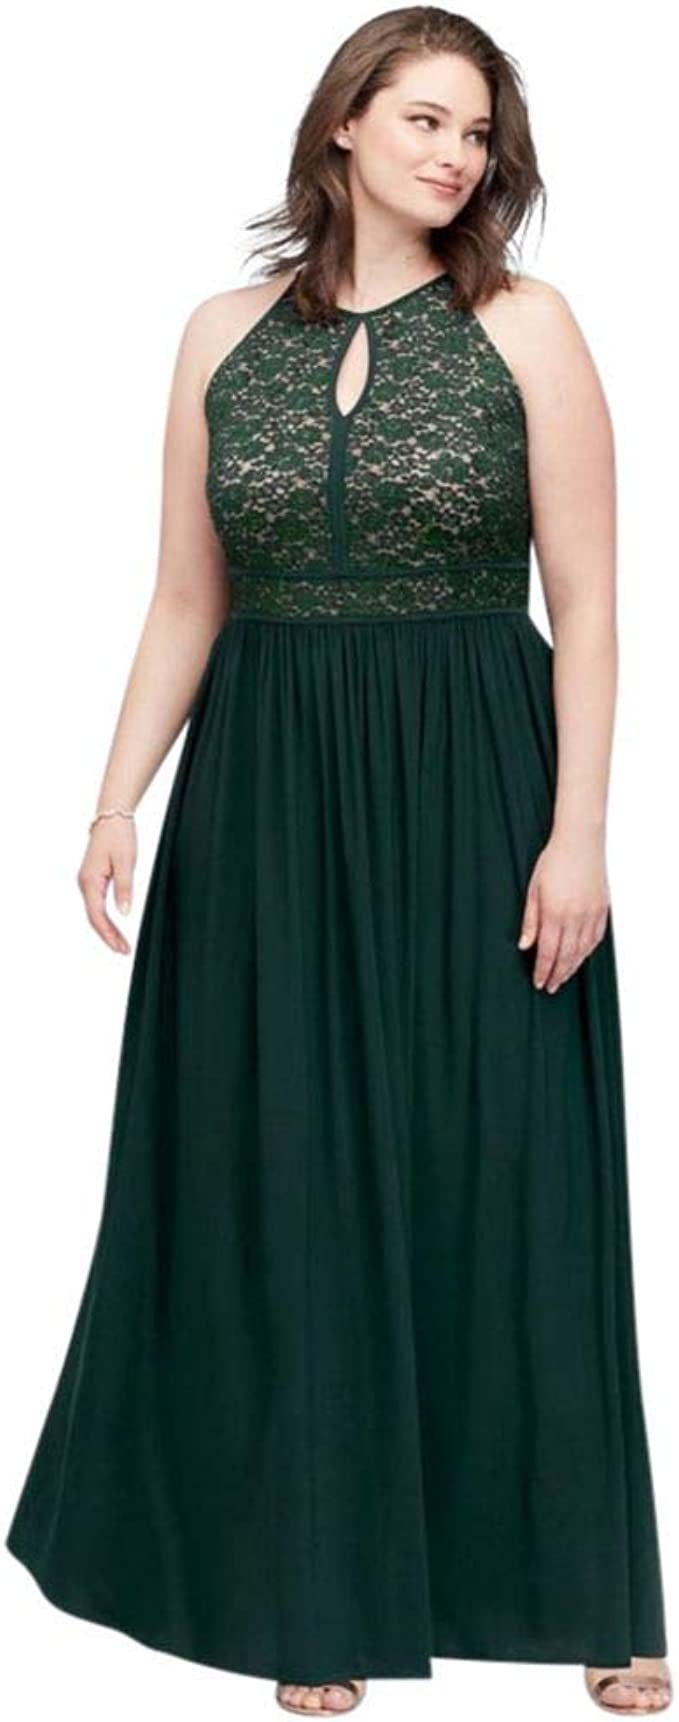 Lace Keyhole Tie Back Plus Size Halter Dress Style 12089DW